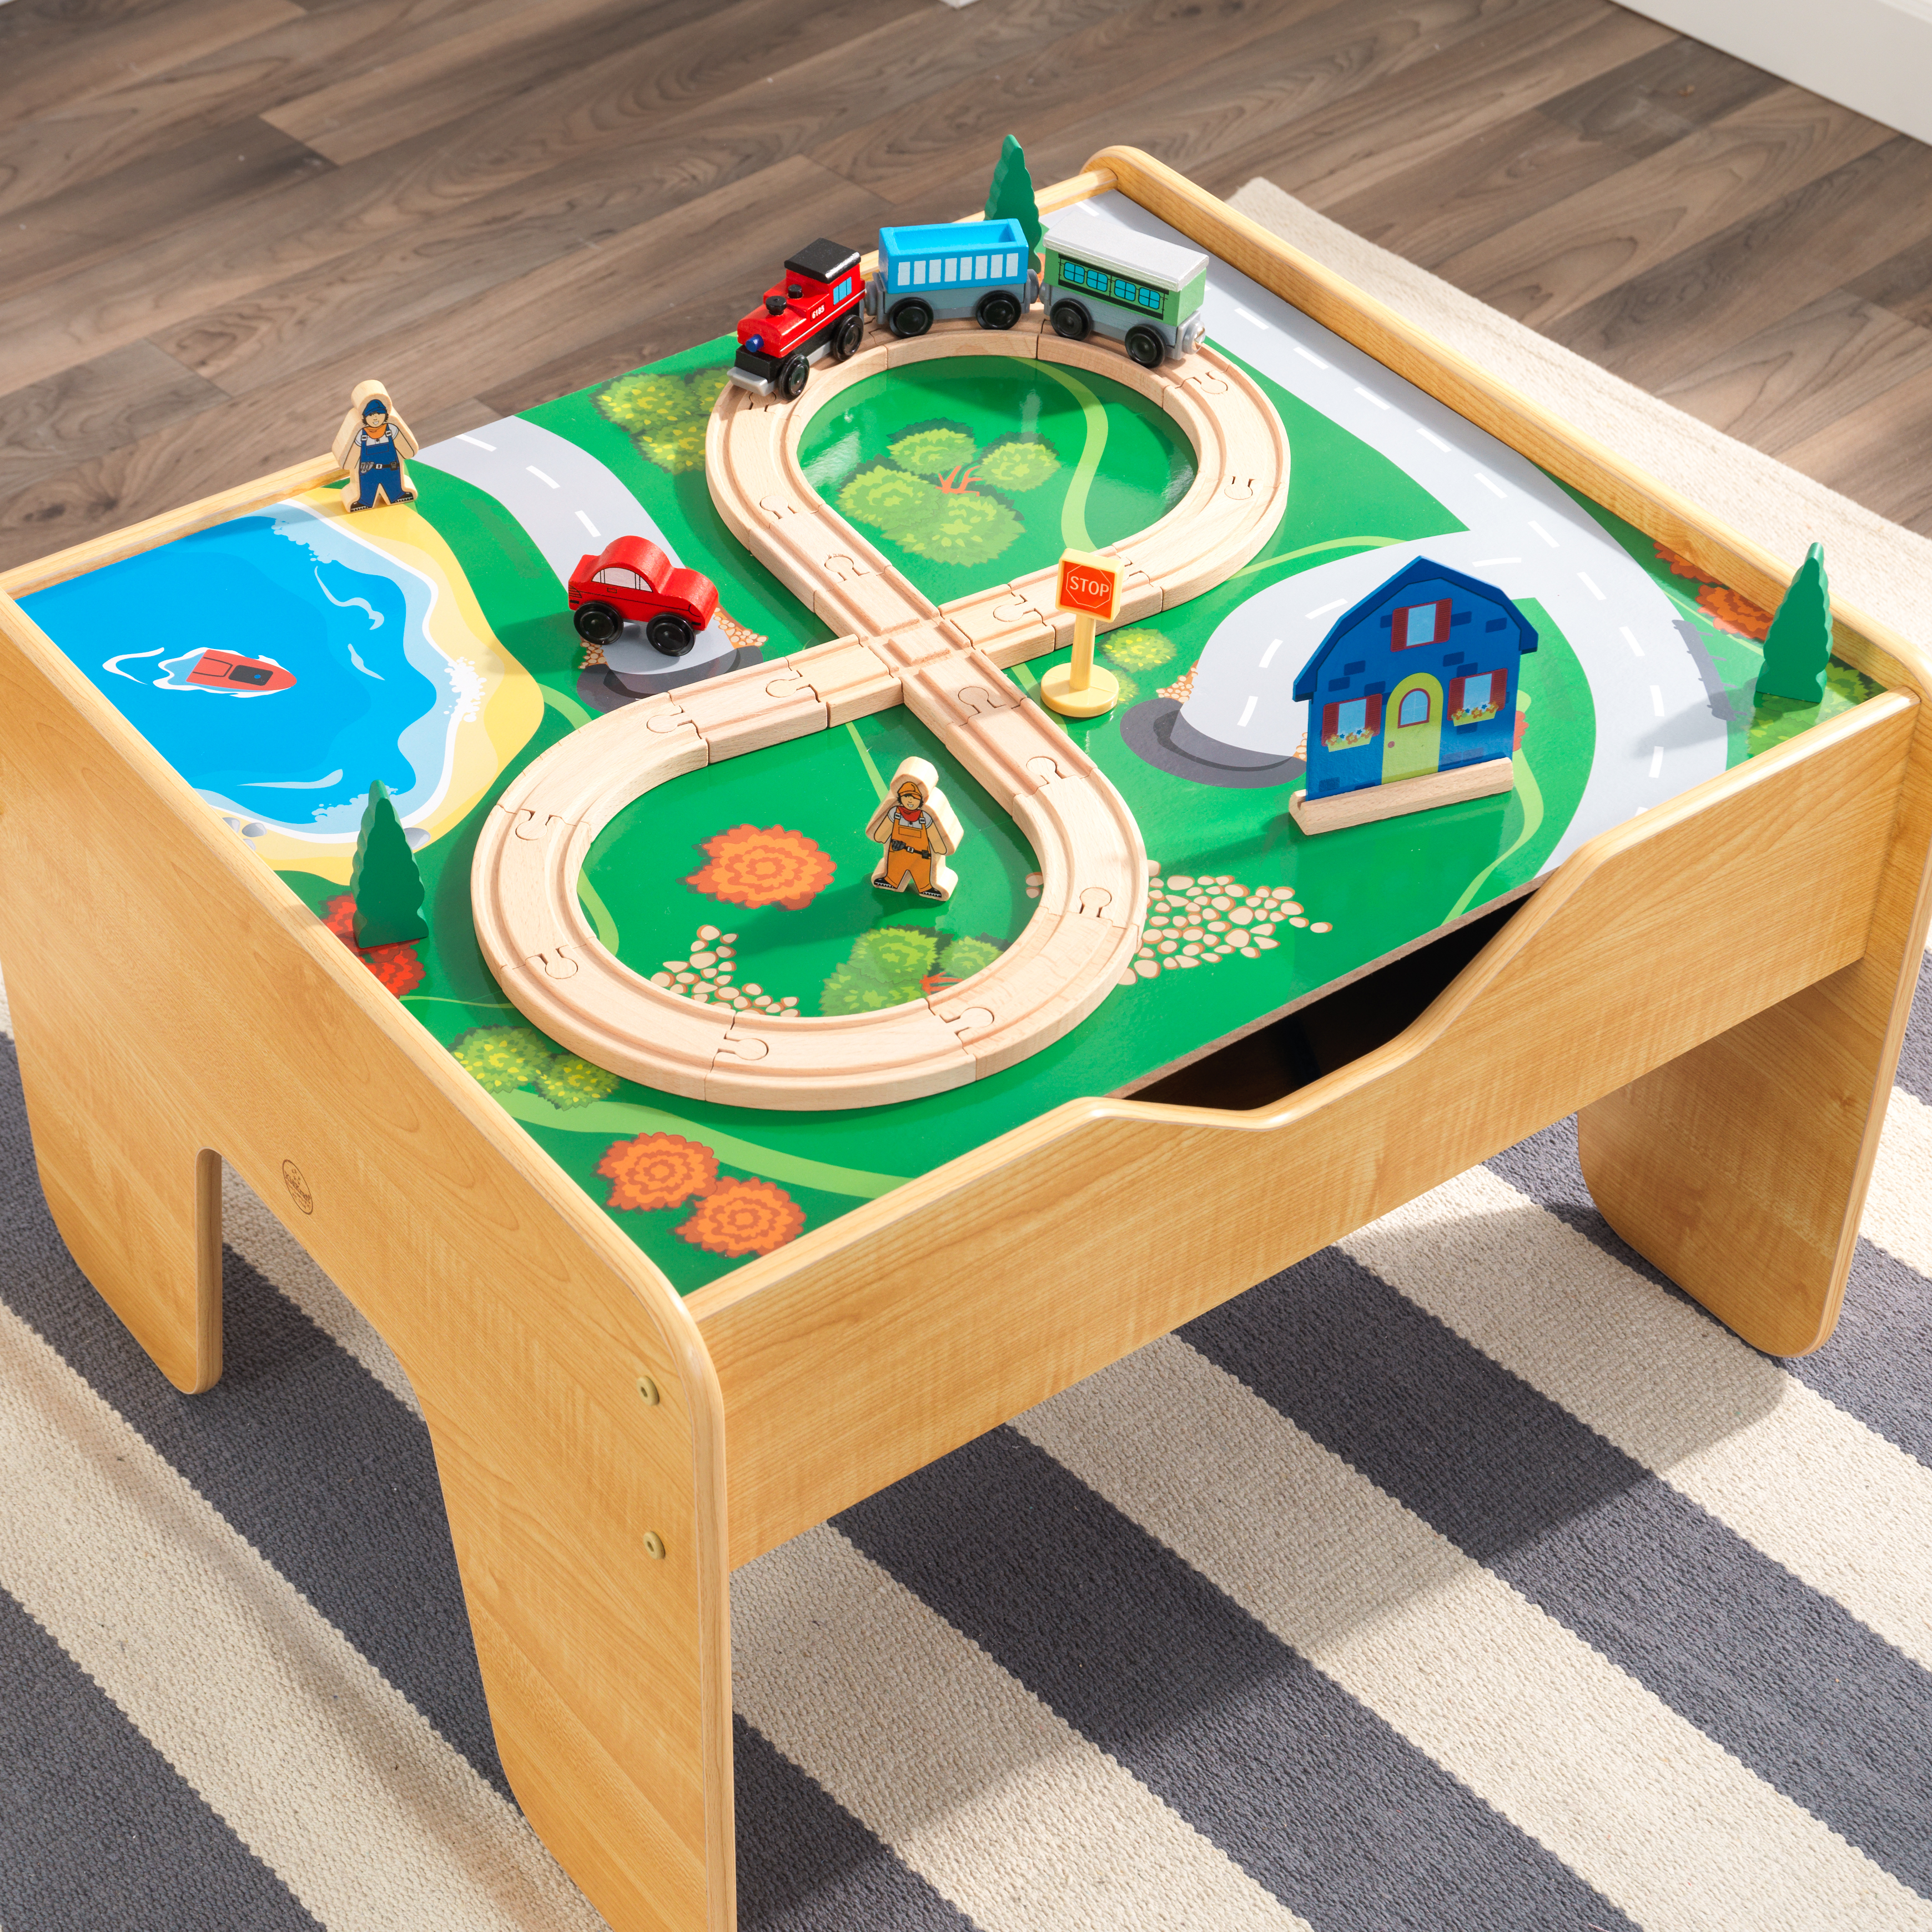 KidKraft 2-in-1 Activity Table With Board - Natural with 230 ...